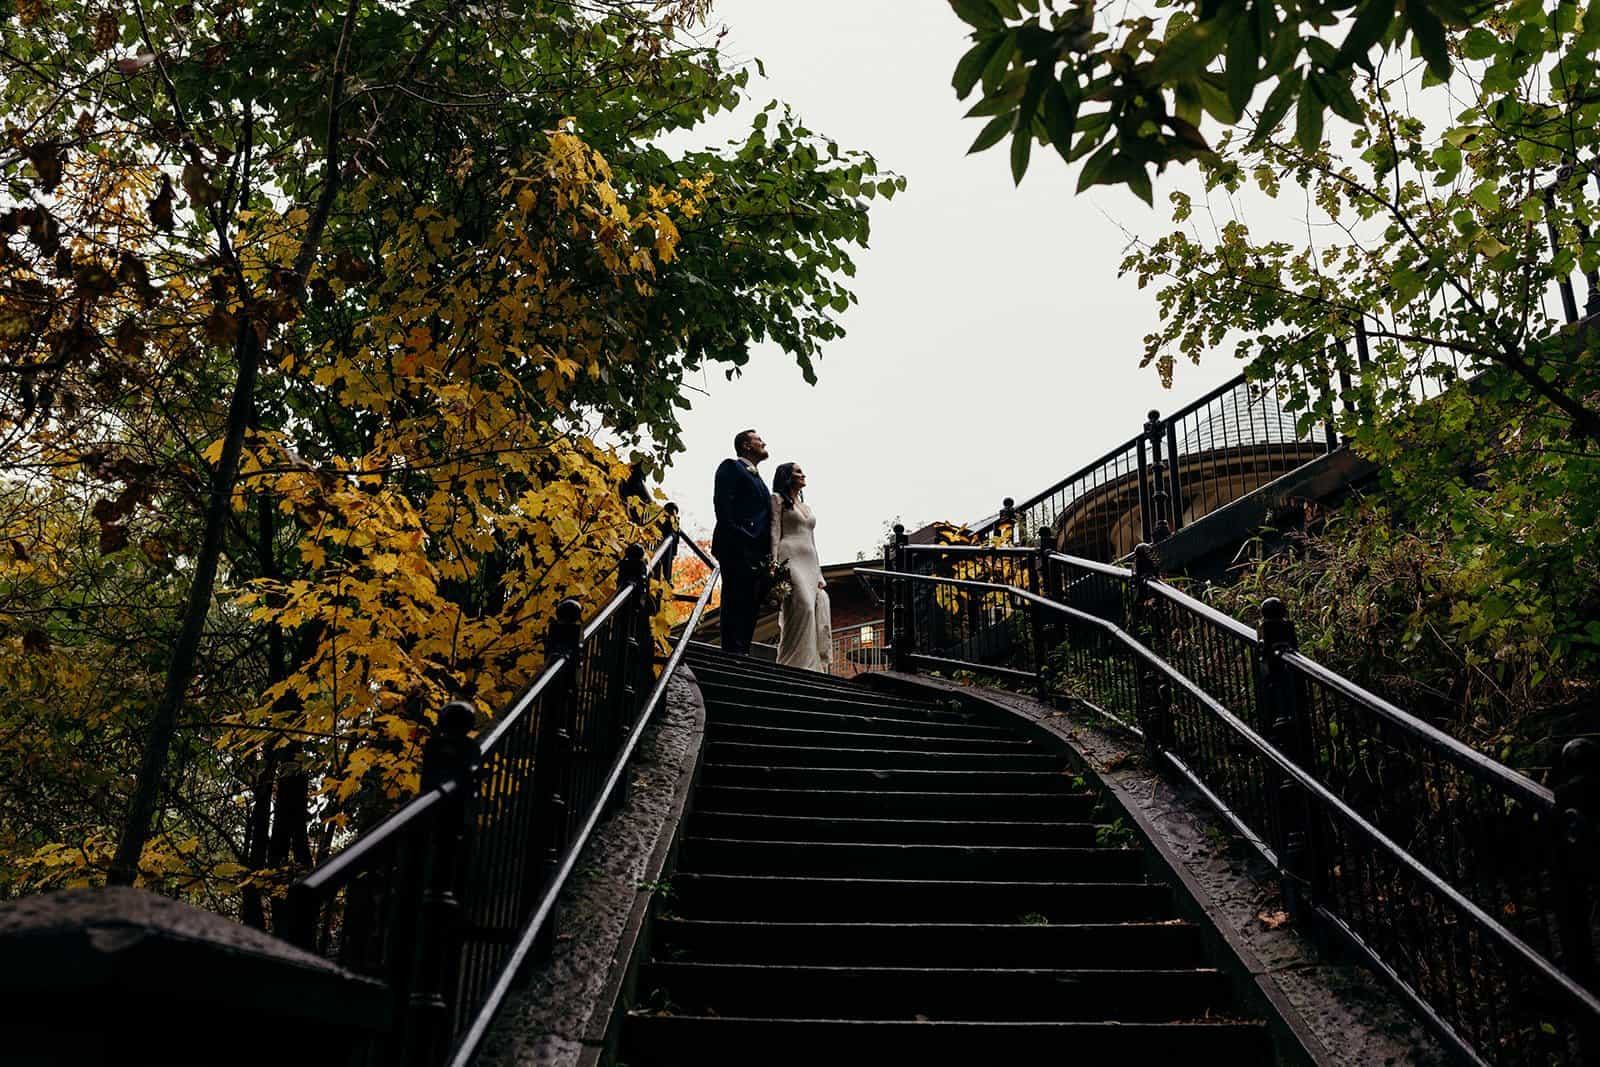 man and woman look up into the sky next to stairs